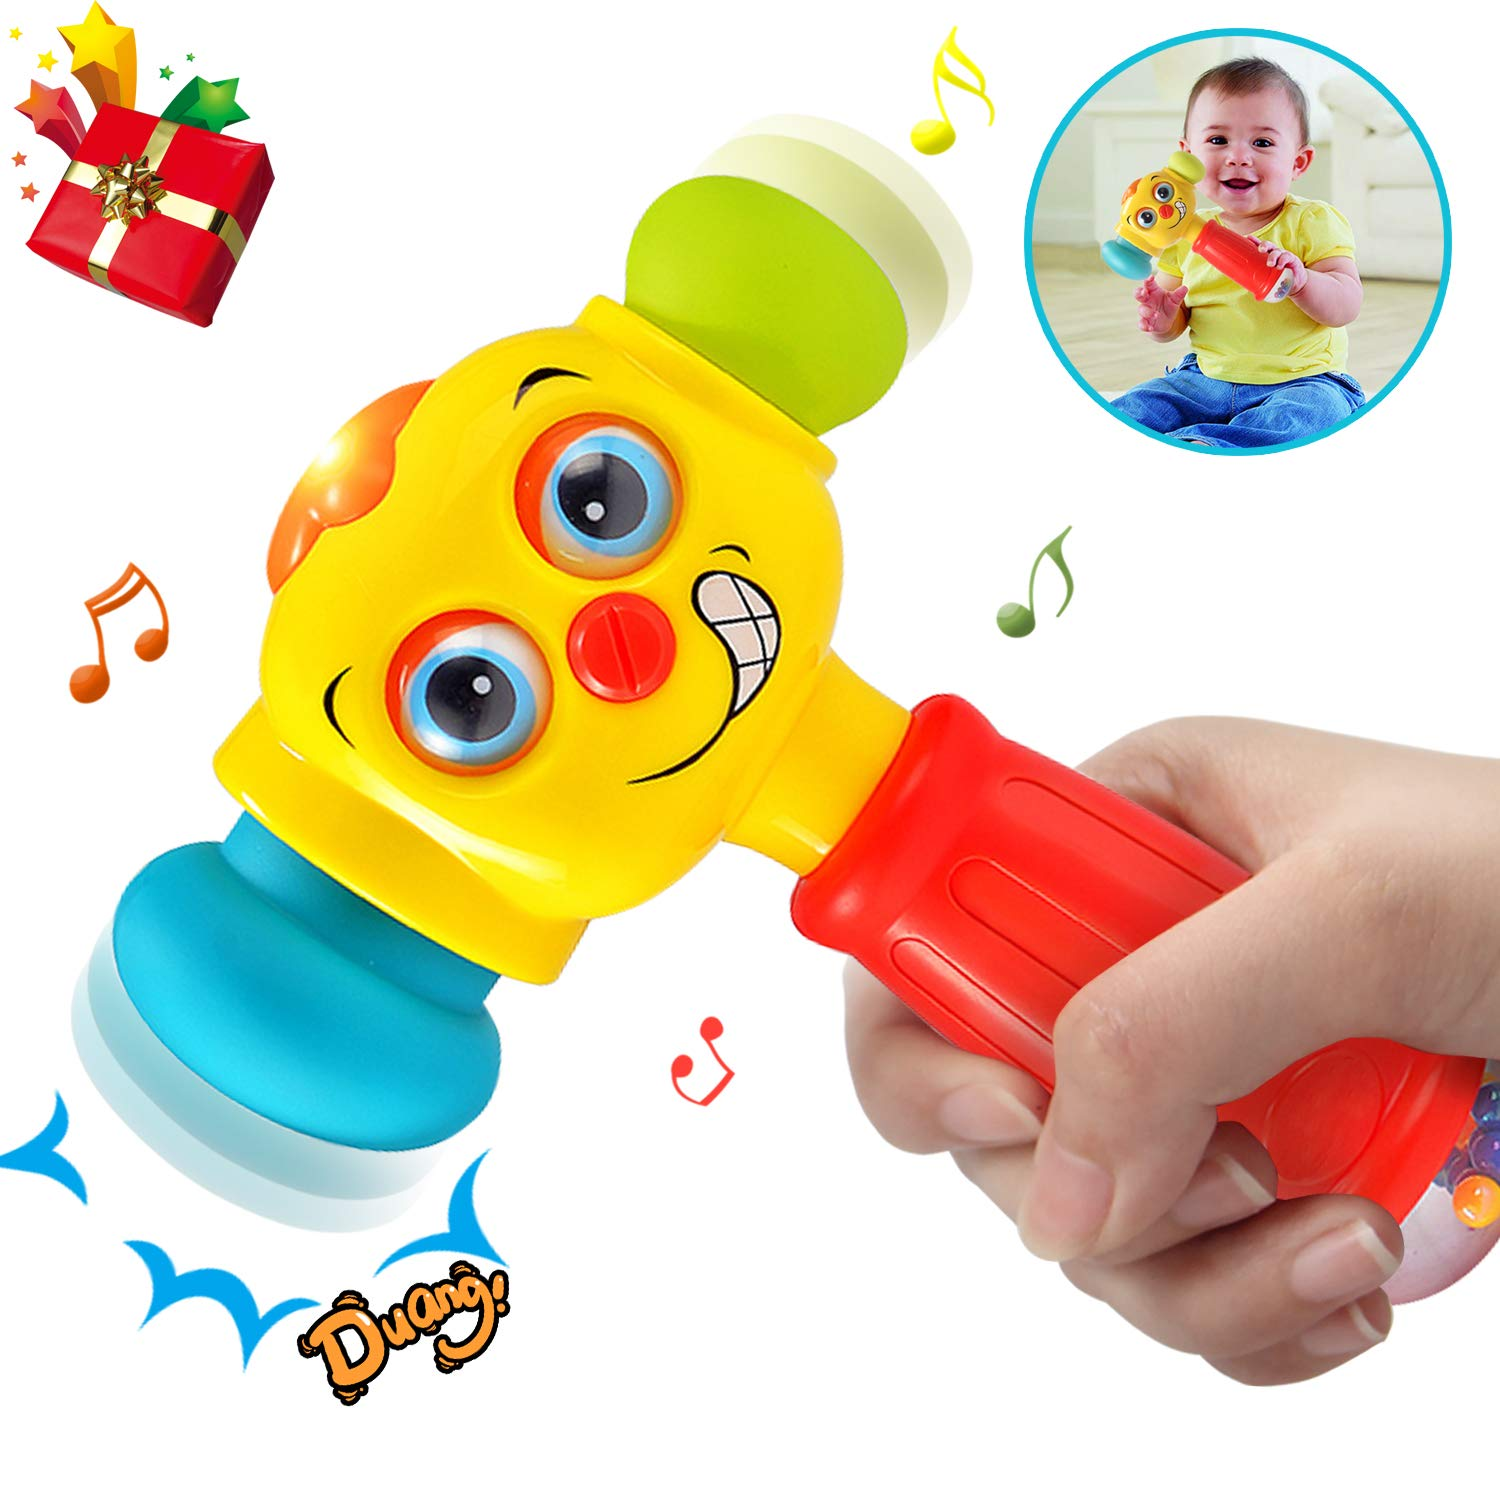 HOMOFY Baby Toys Funny Changeable Hammer Toys 6 Months up,Multi-Function,Lights MusicToys for Infant Boys Girls 1 2 3 Years Old -Best Gifts by HOMOFY